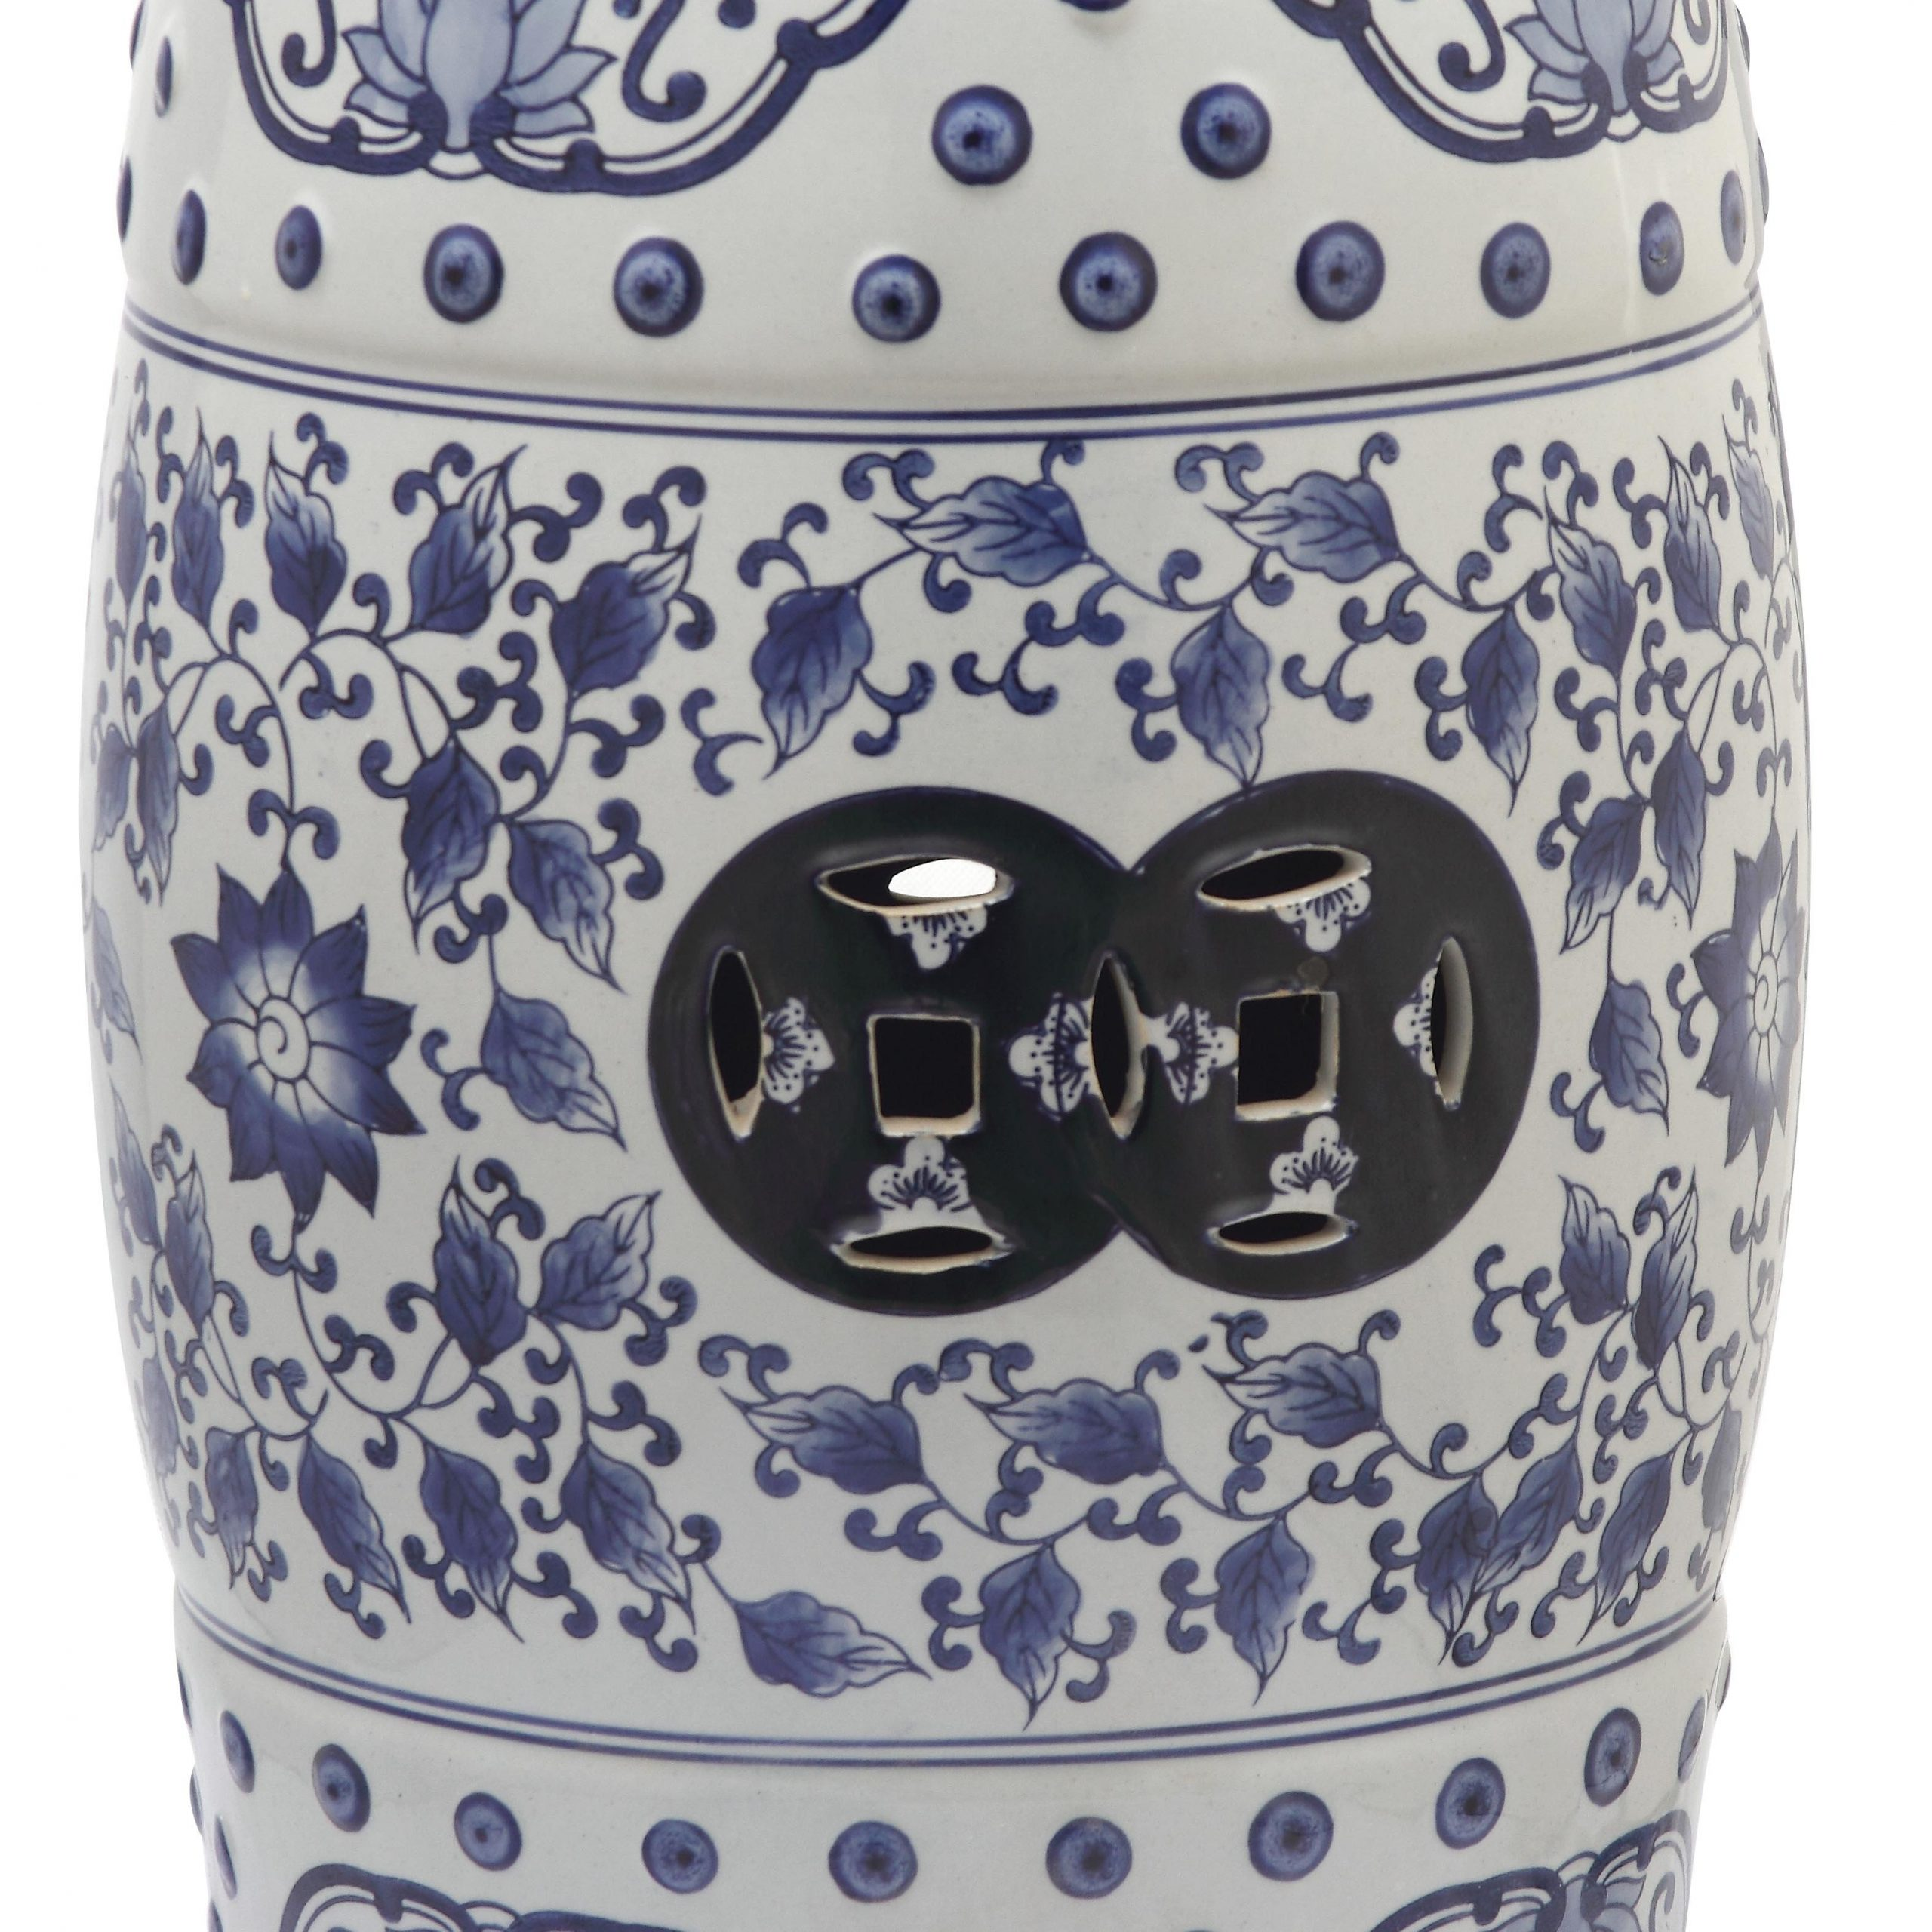 Wurster Ceramic Drip Garden Stools Throughout 2020 Blue Garden Accent Stools You'll Love In (View 11 of 30)